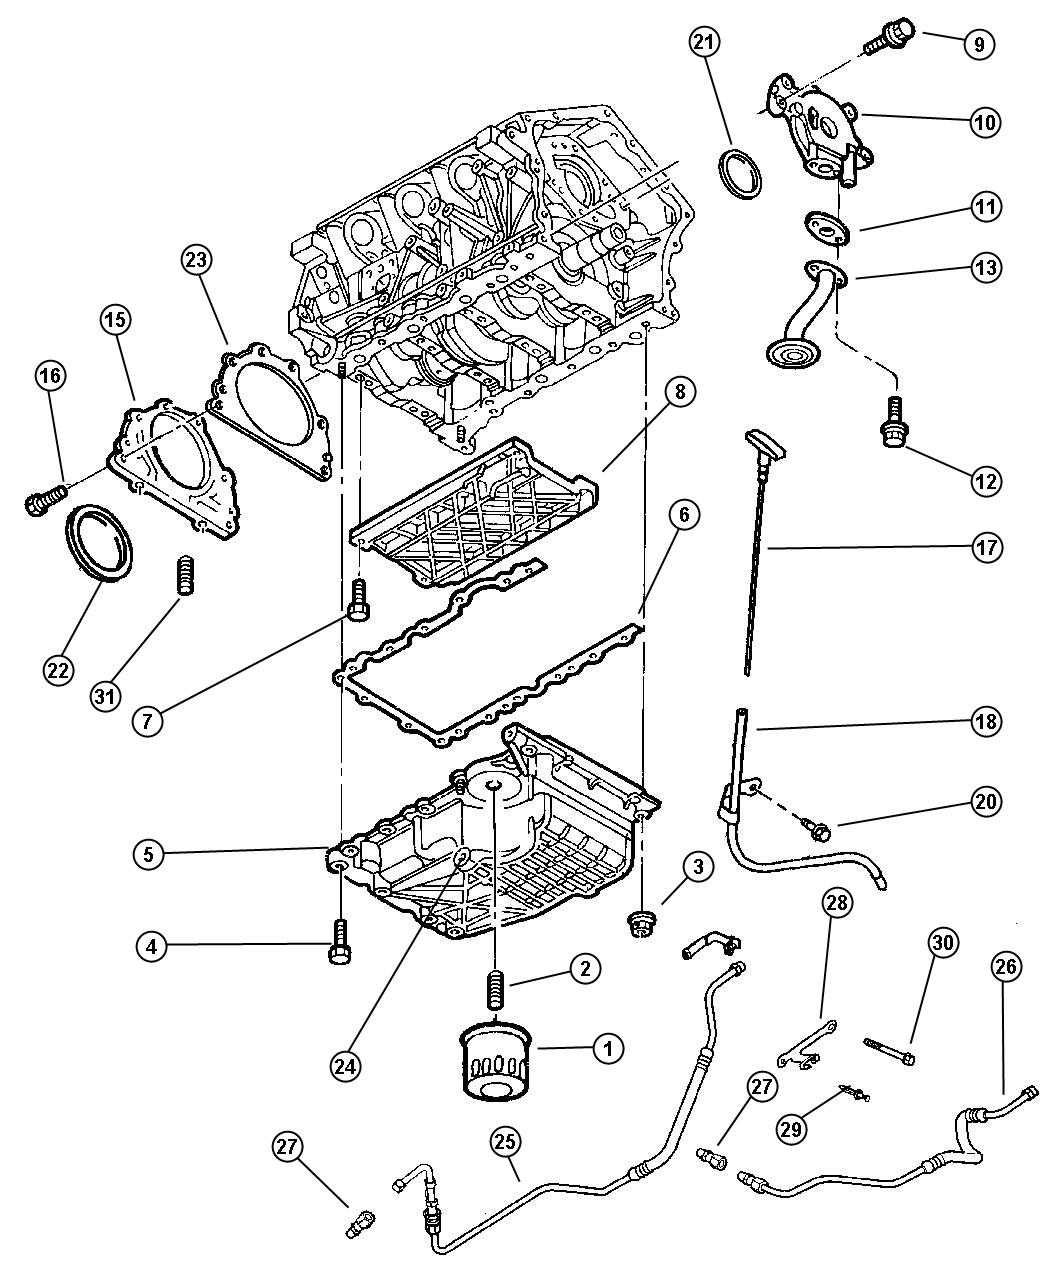 Dodge Intrepid Engine Diagram Books Of Wiring For 2004 Car Schematics 2 7 Motor Get Free Image 2001